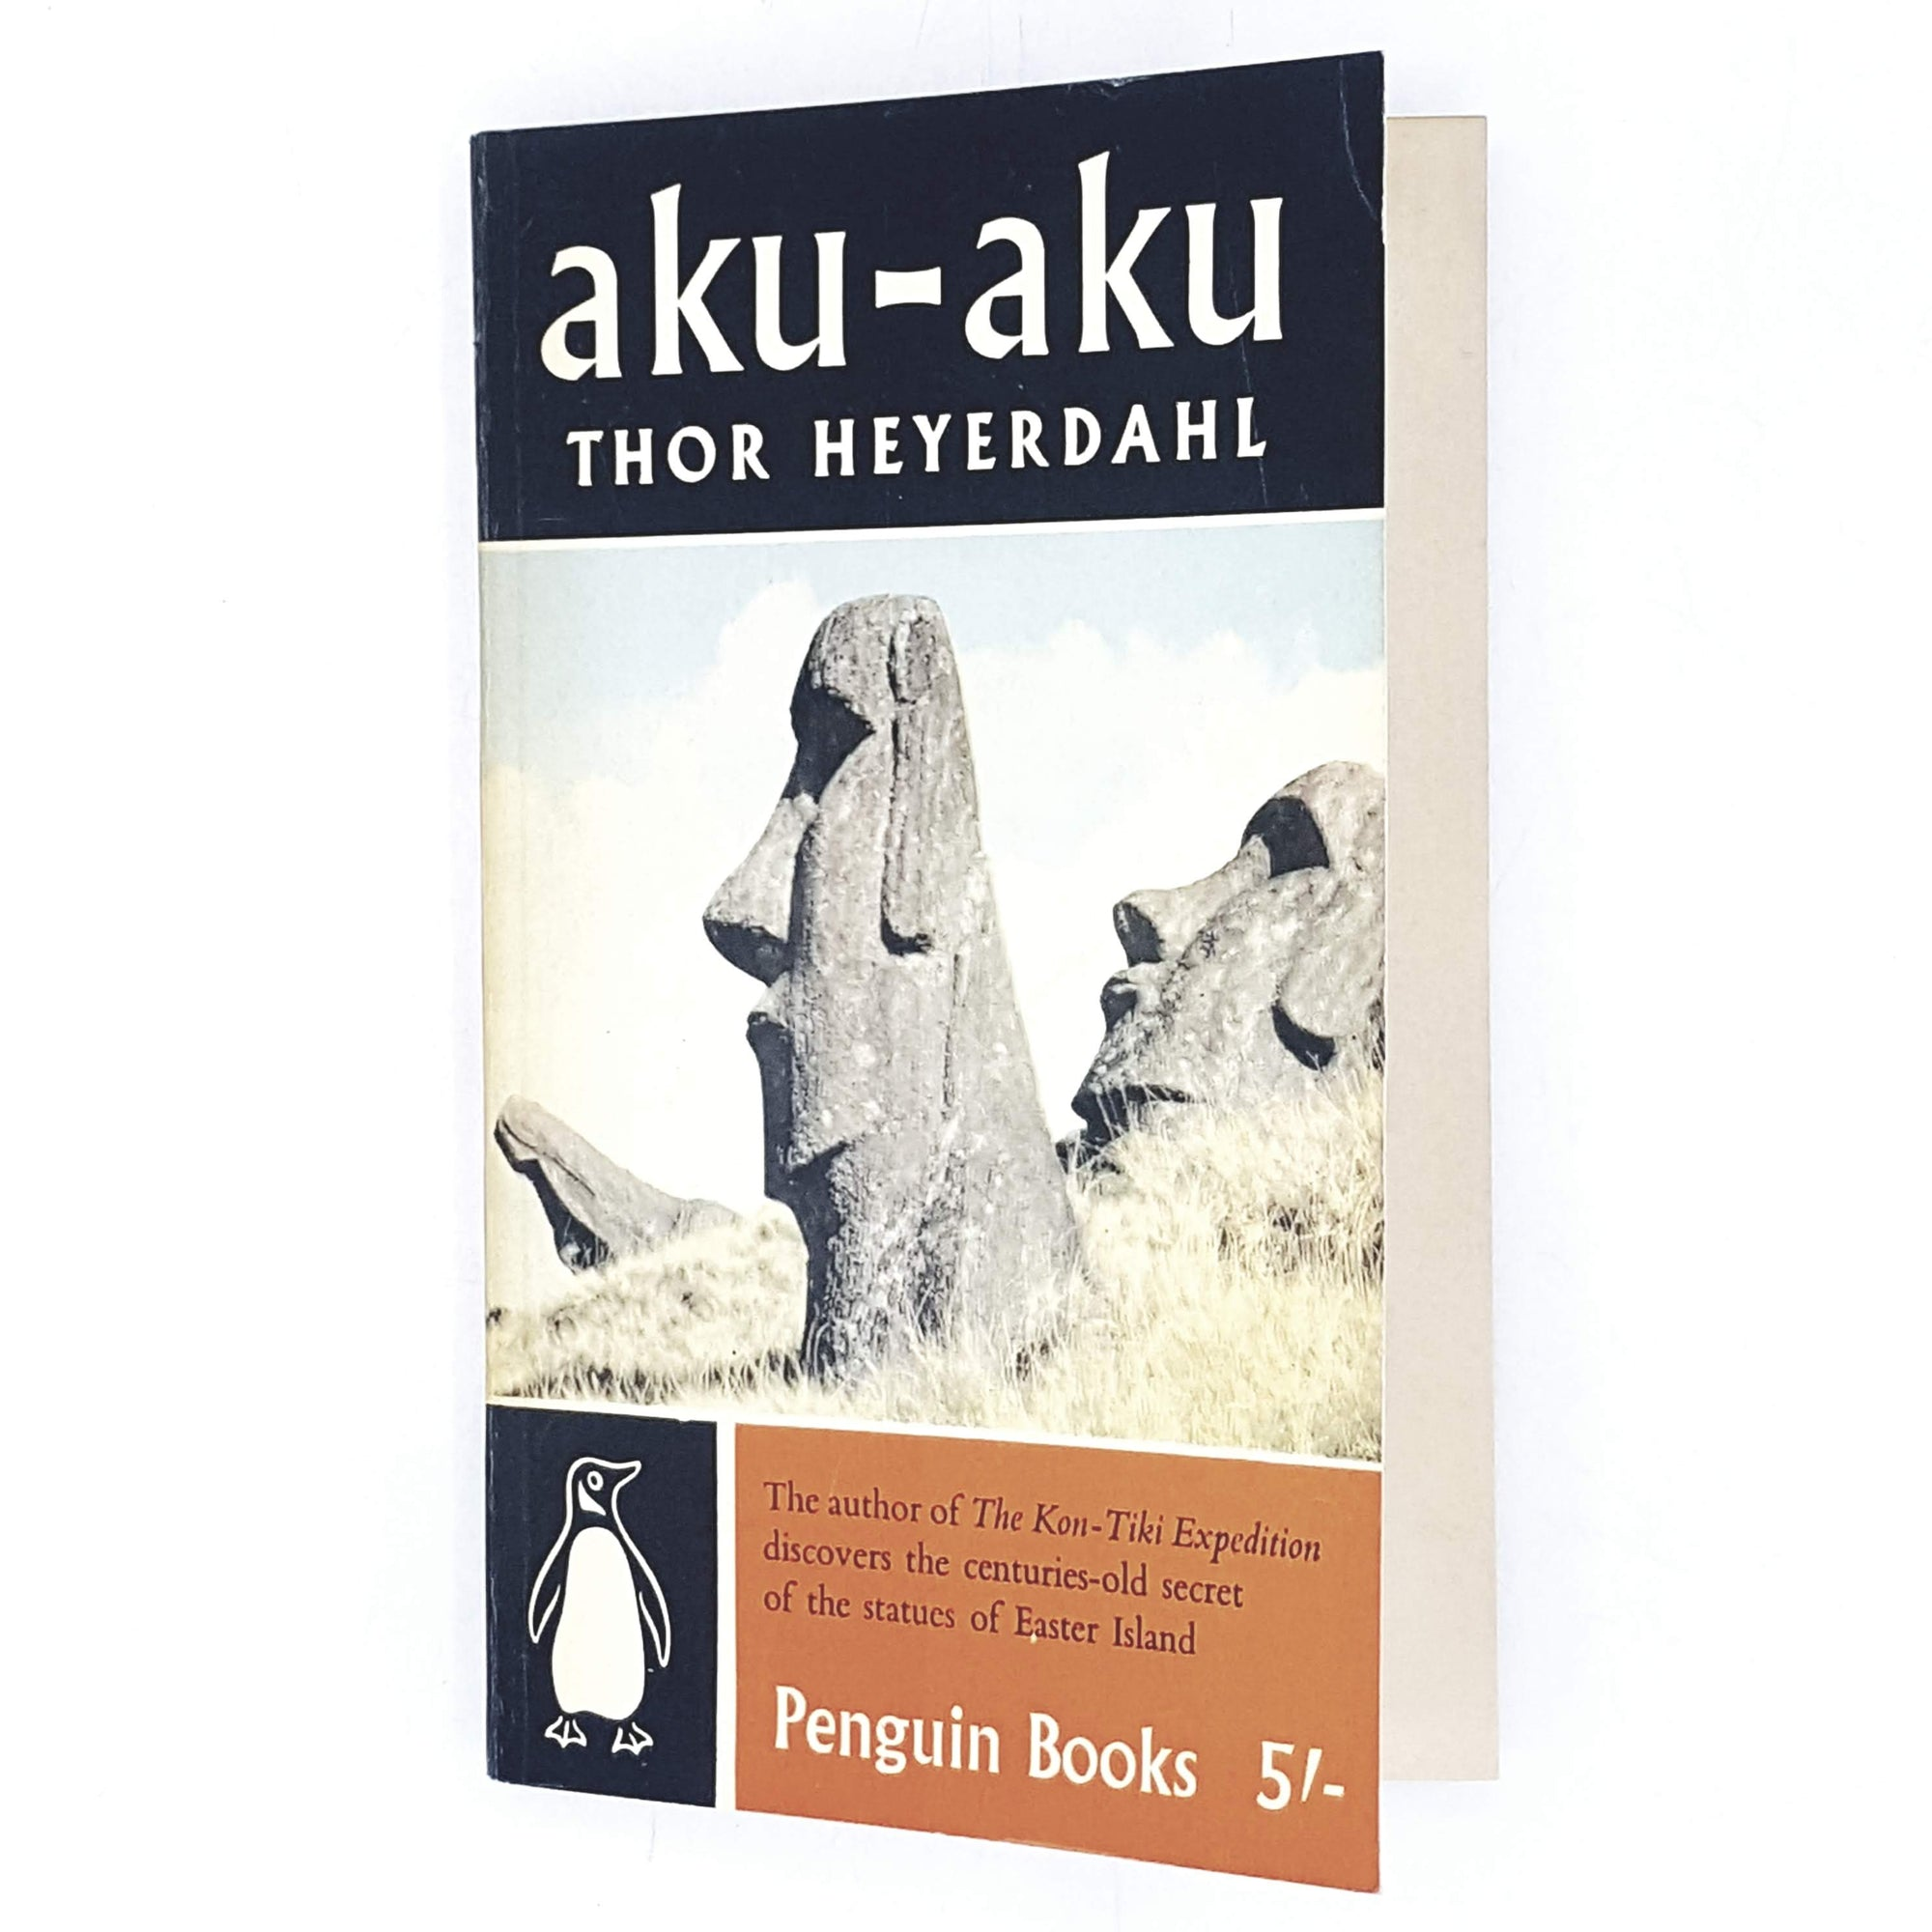 Illustrated Penguin Aku-Aku by Thor Heyerdahl 1958